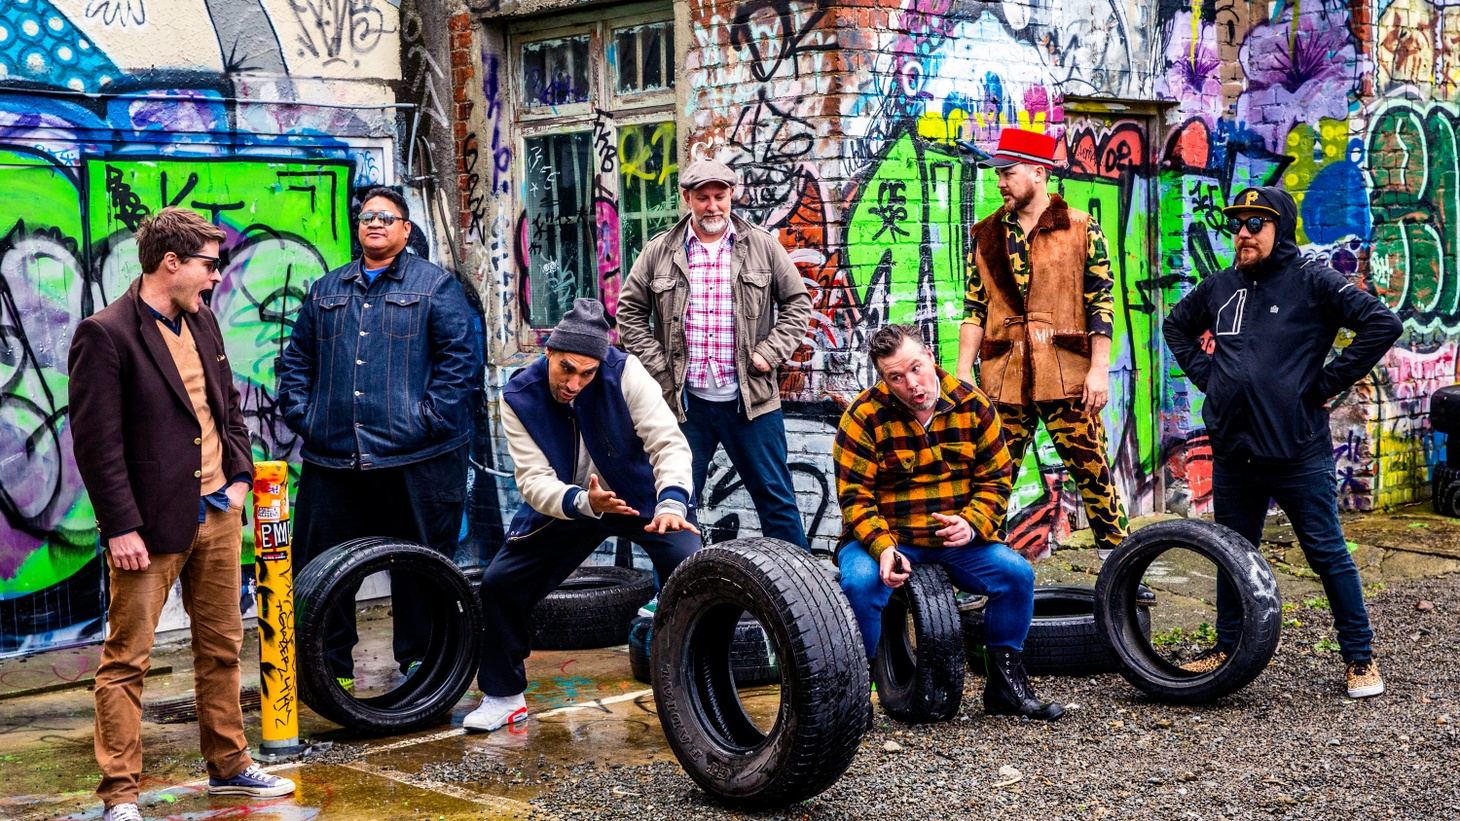 A chart-topping outfit here at KCRW, Fat Freddy's Drop has a new album recorded and named after their studio in their home base of New Zealand.